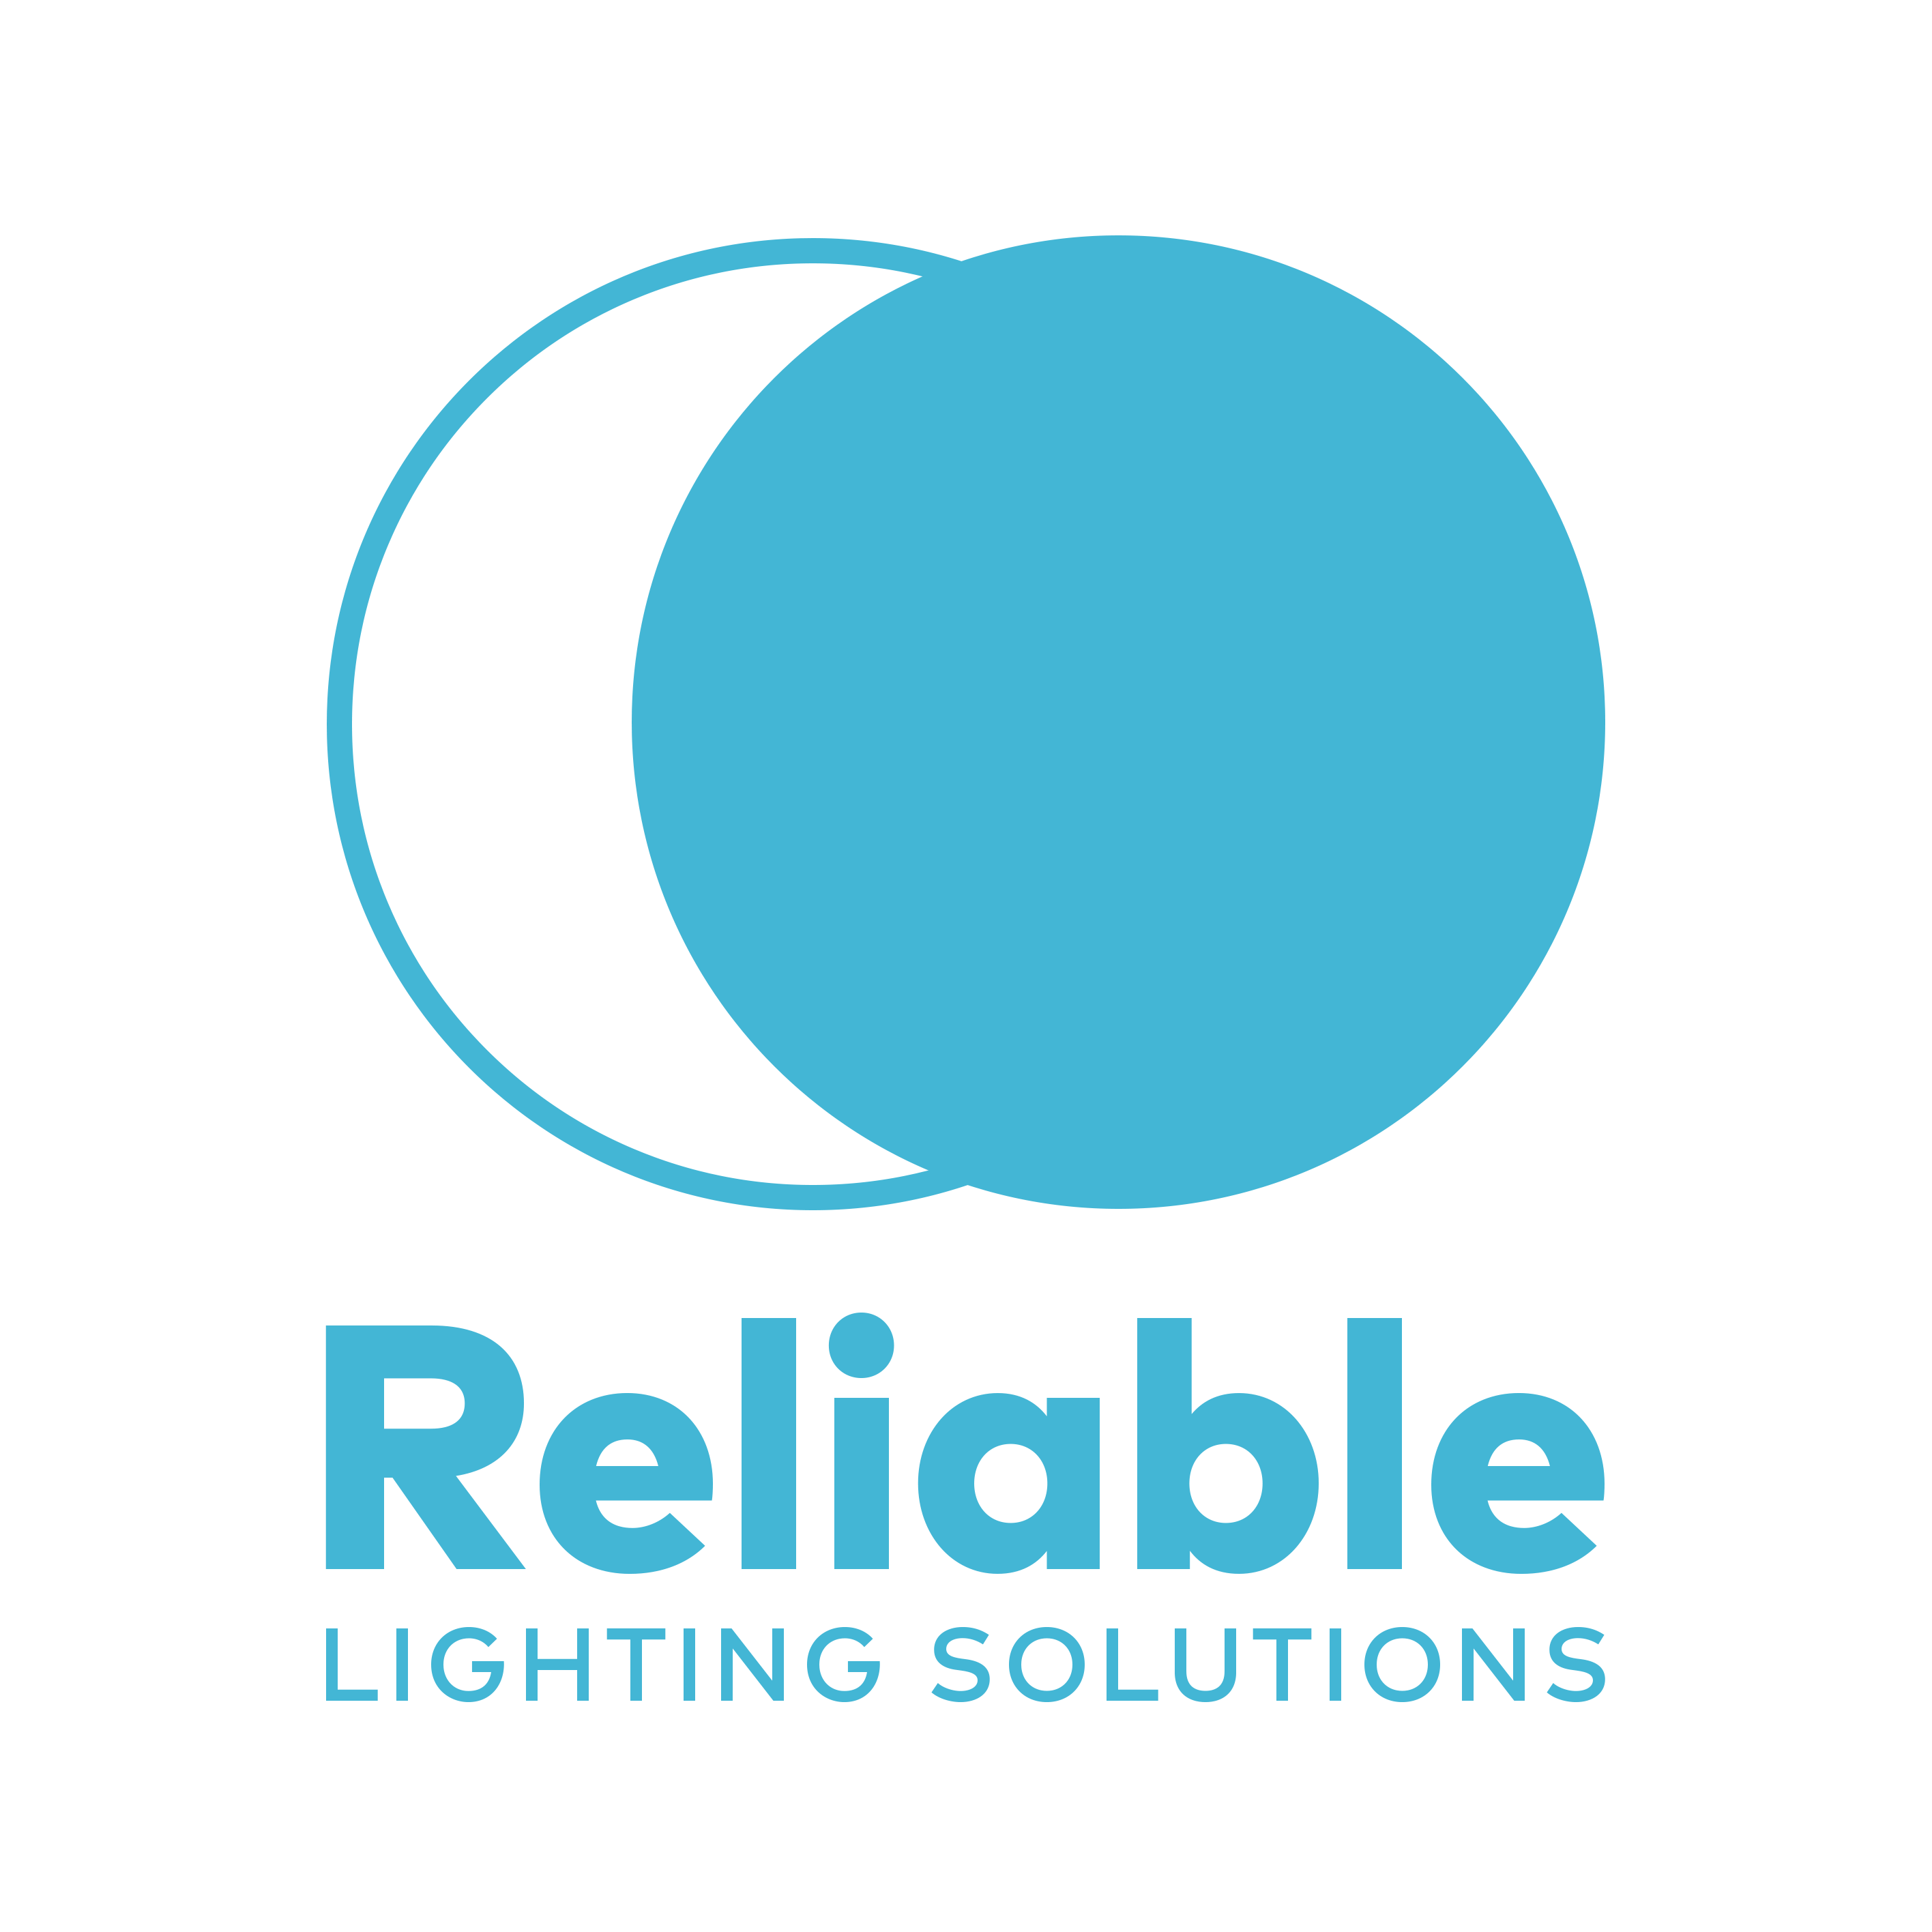 Reliable Lighting Solutions